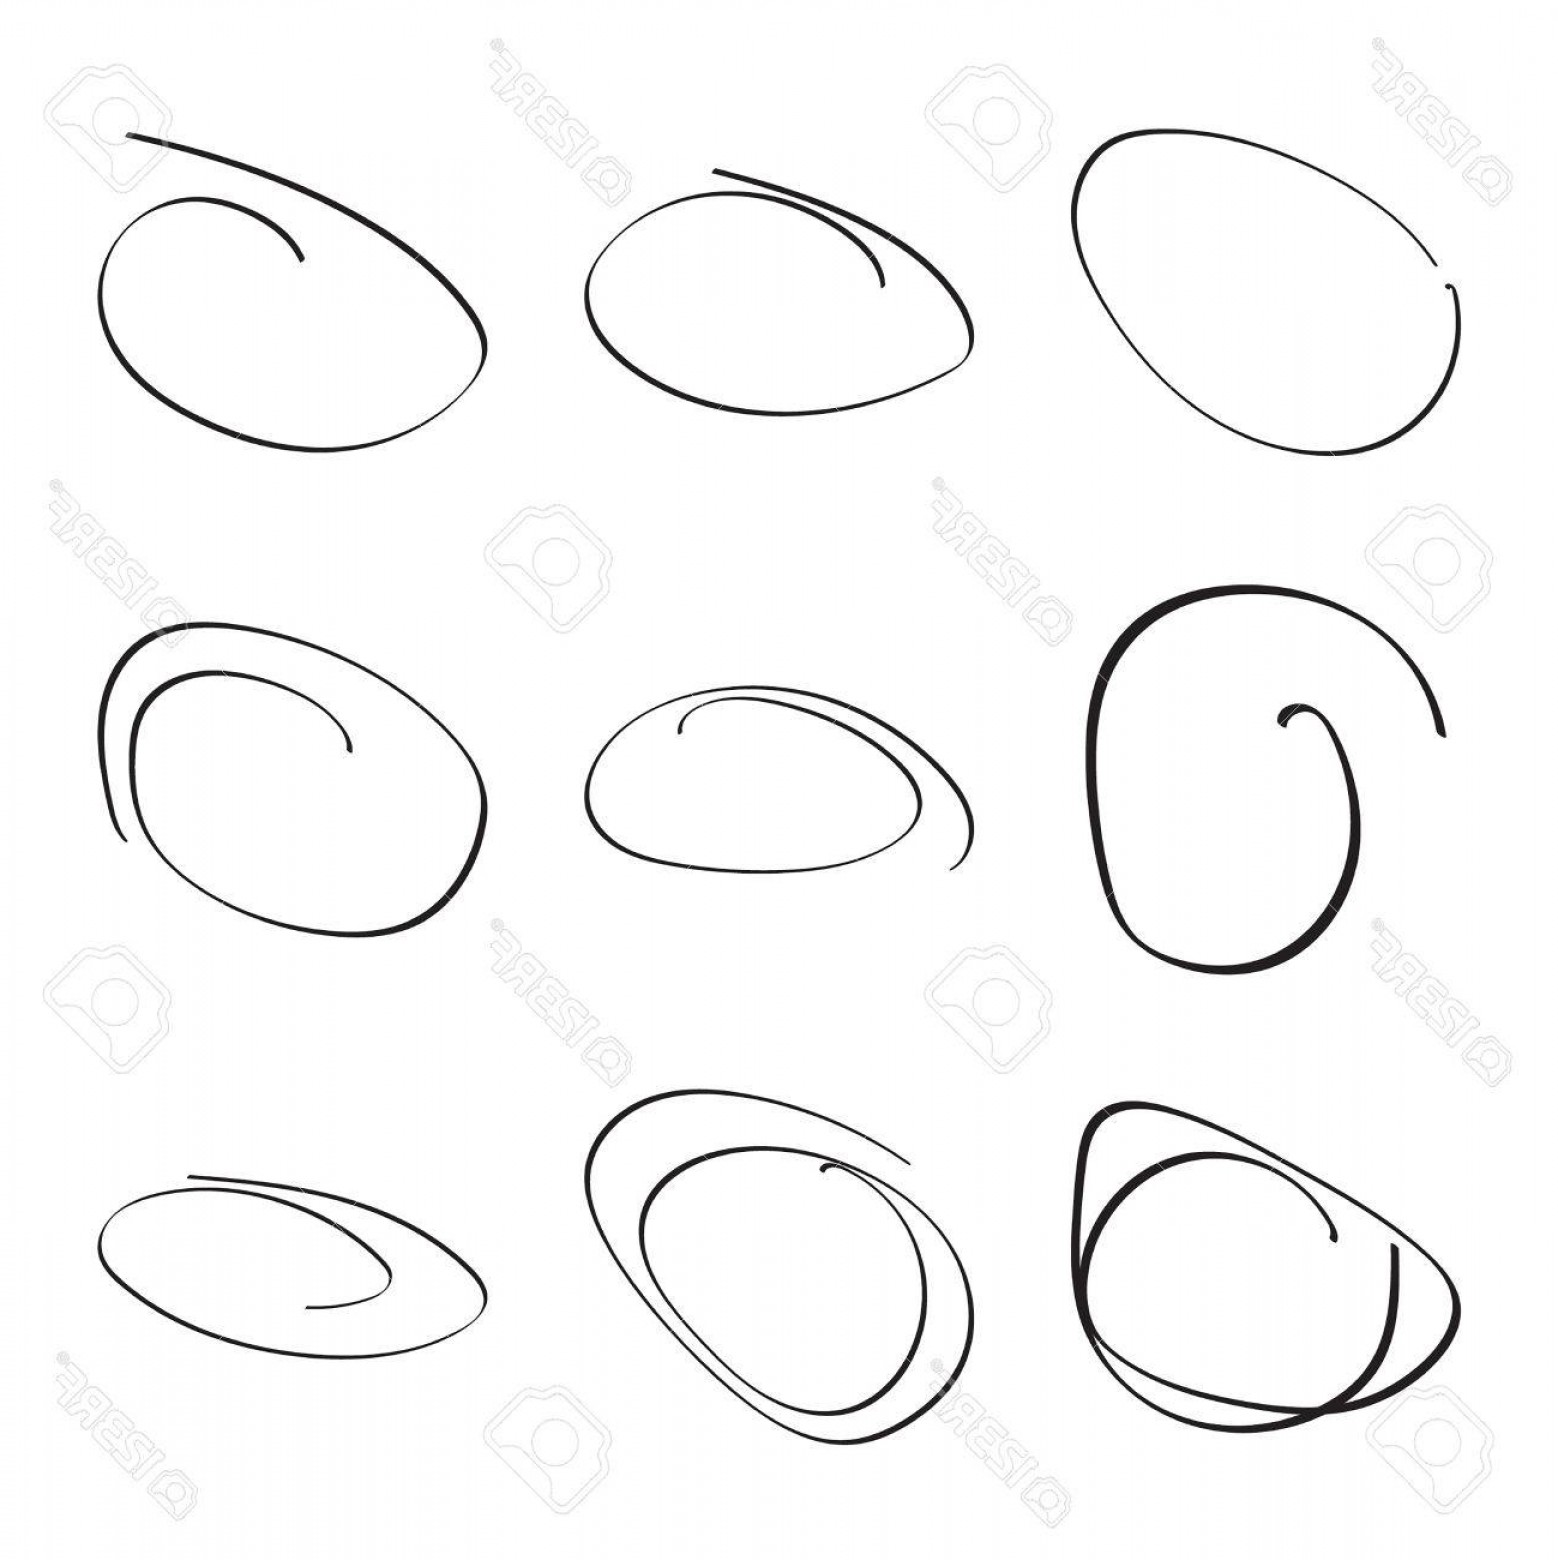 1558x1560 Underline Swirls Vector Shopatcloth